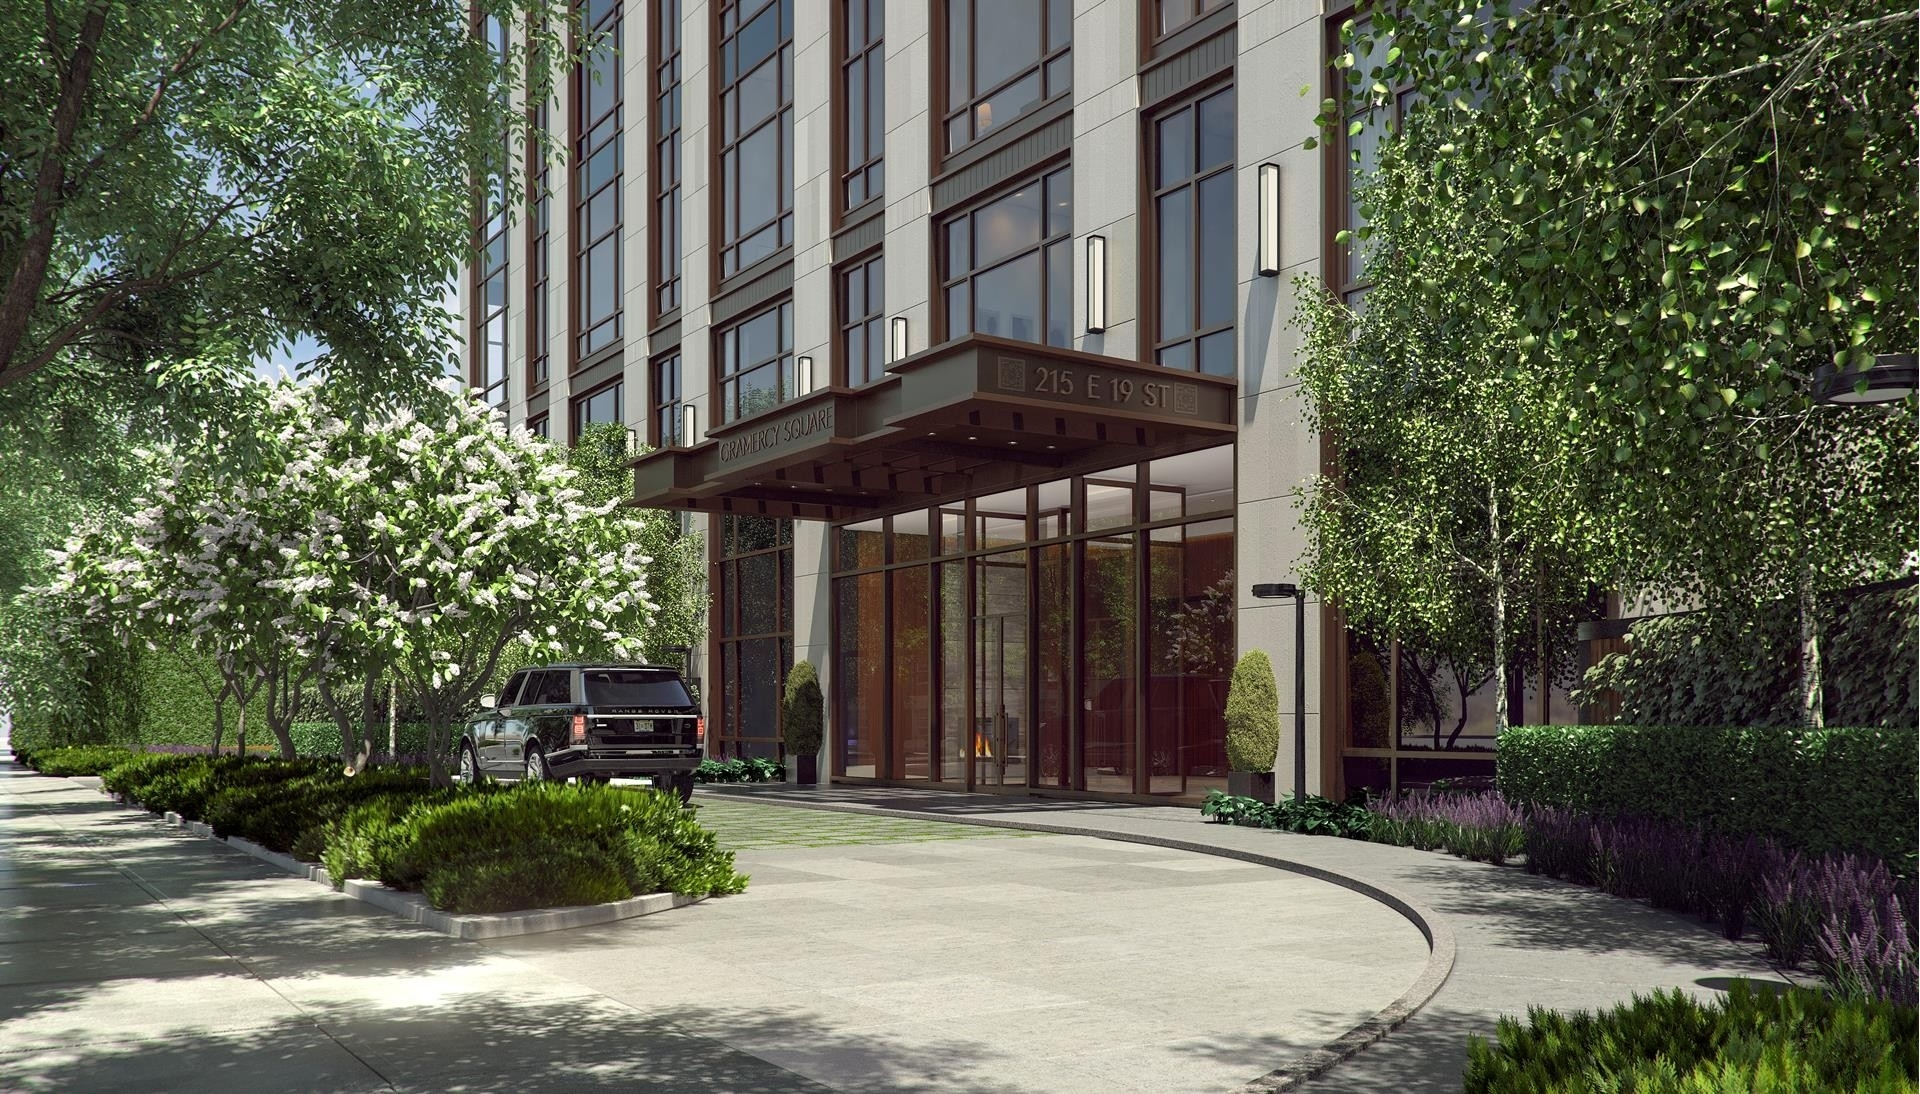 Condominium for Sale at Gramercy Square, 215 East 19th St, 9E Gramercy Park, New York, NY 10003